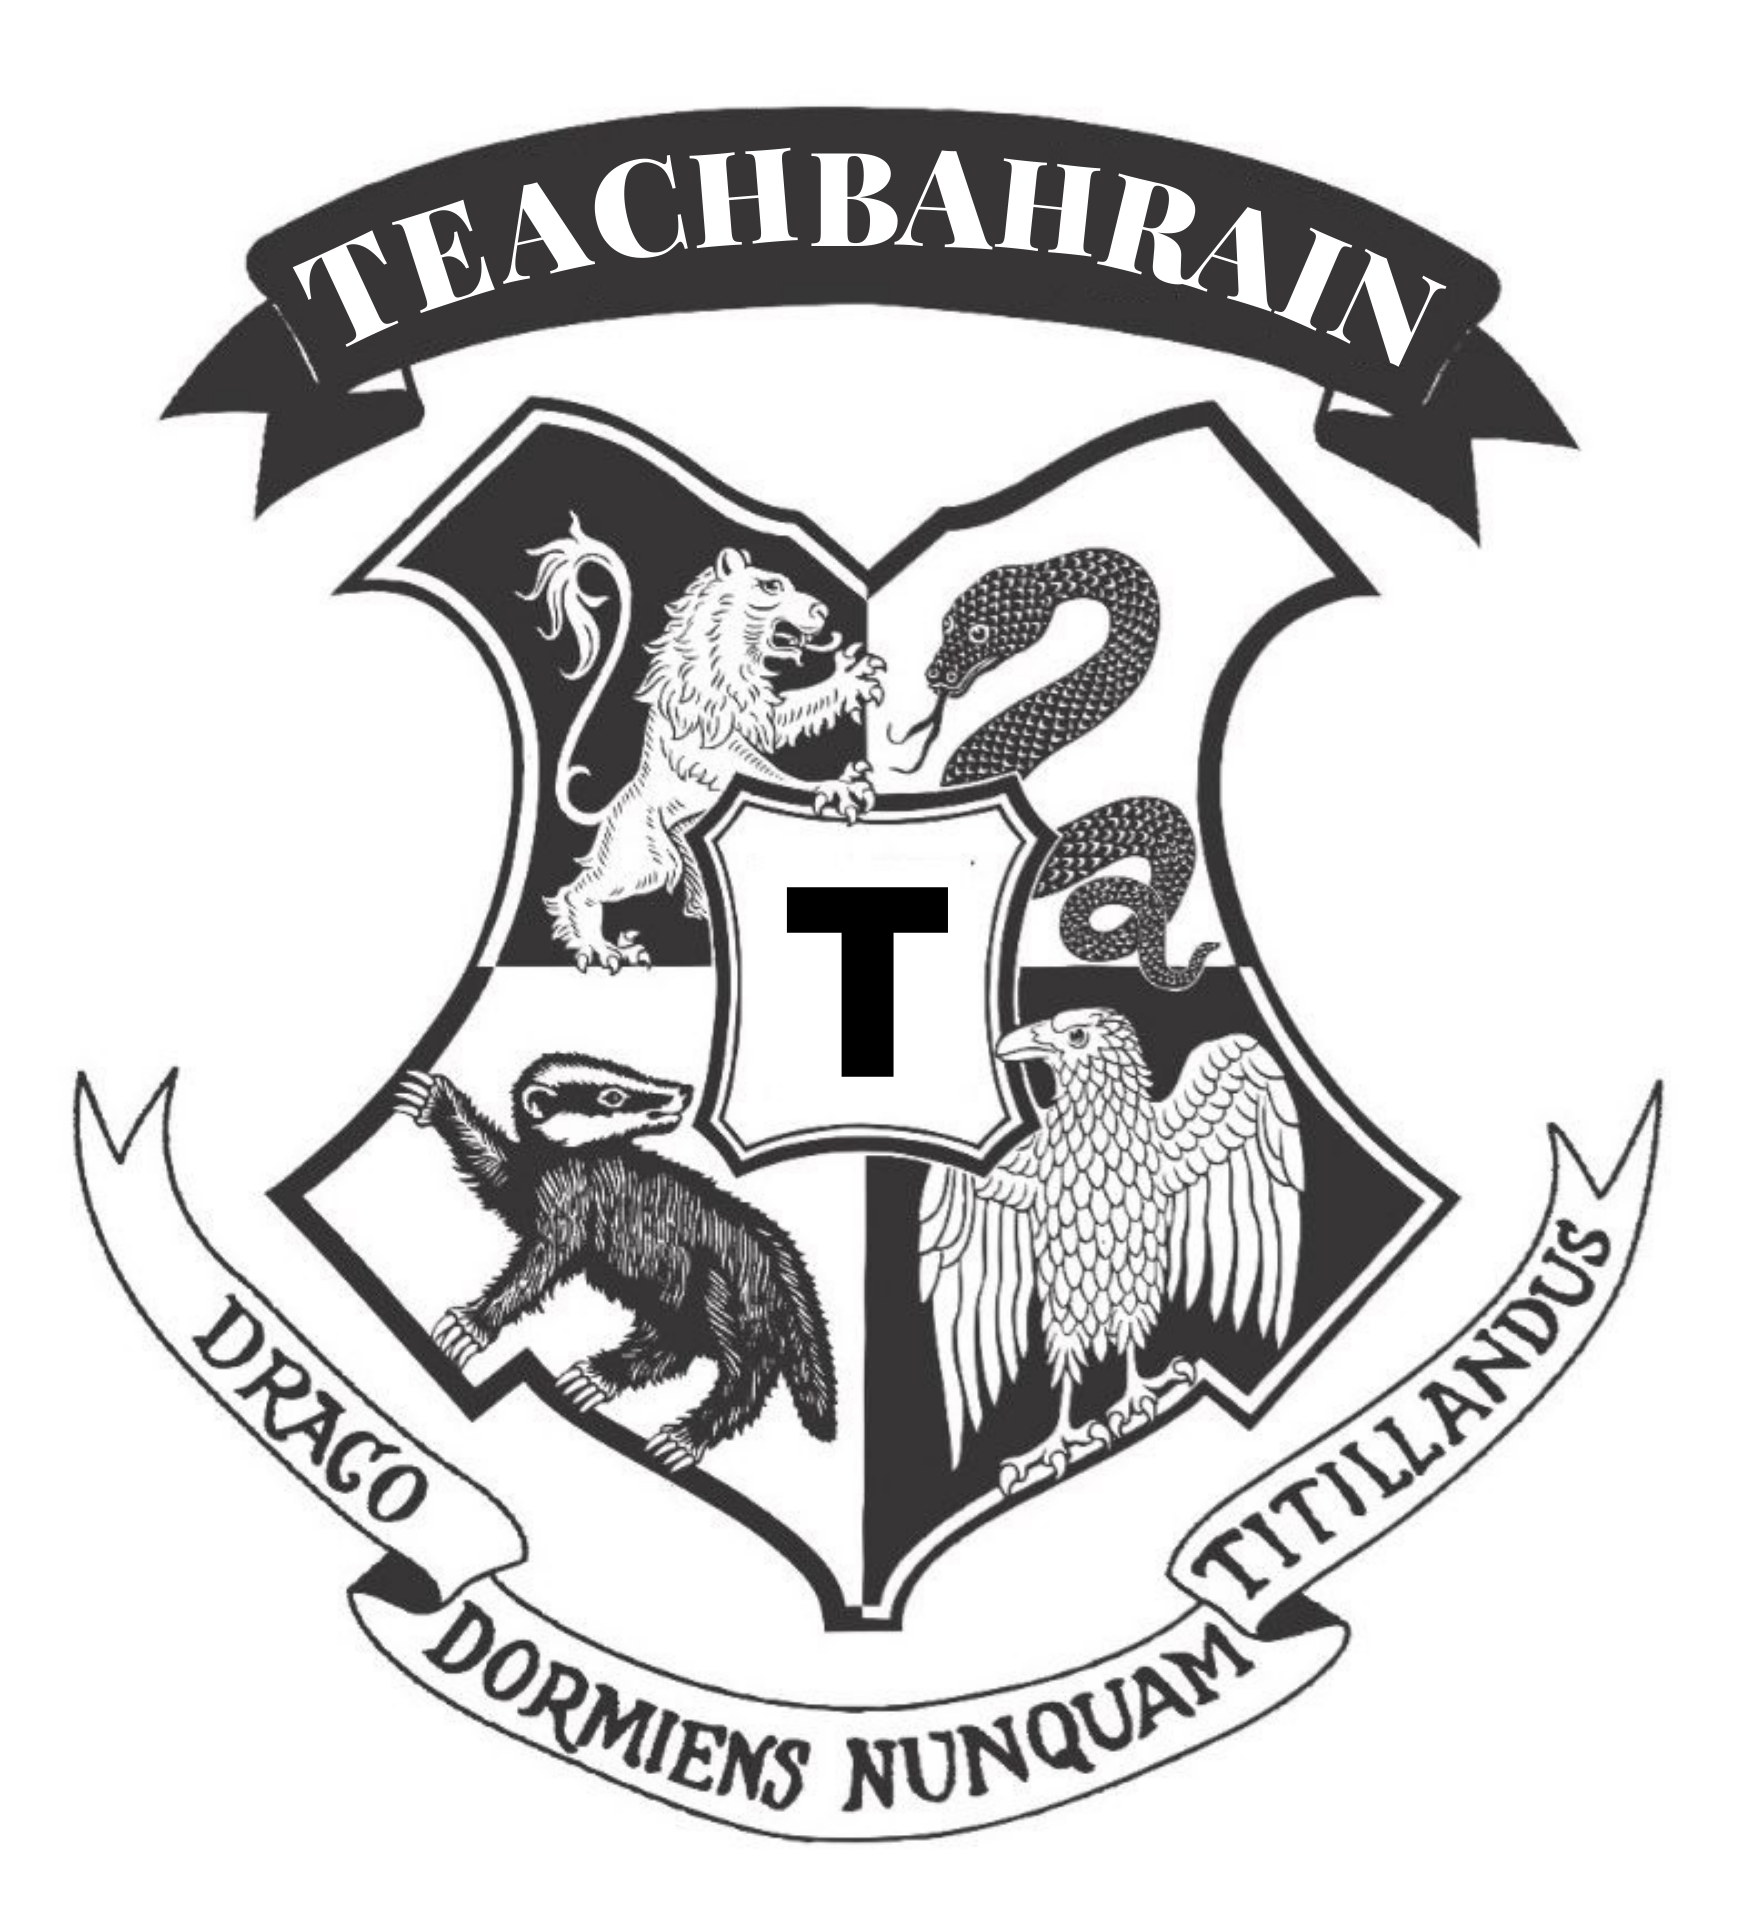 Teachbahrain boardgame club in Bahrain